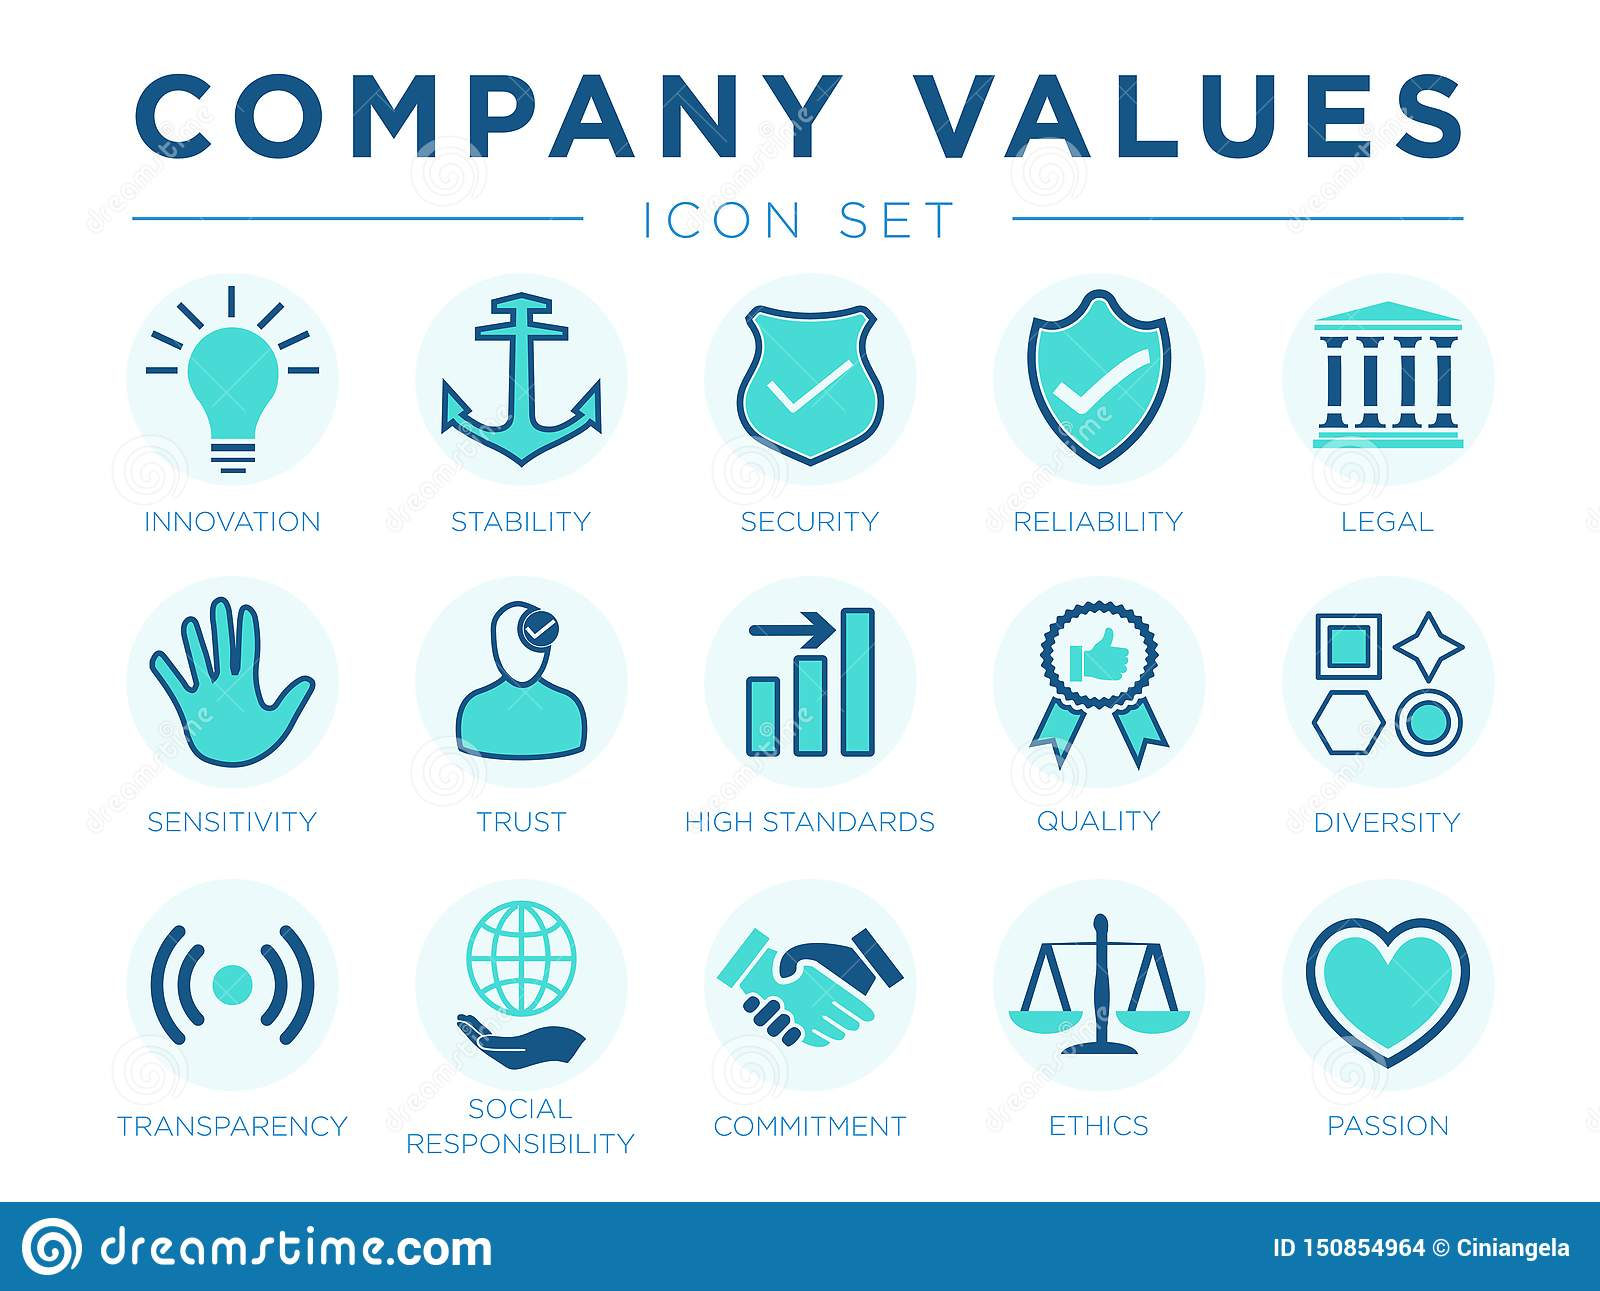 Business Company Values icon Set. Innovation, Stability, Security, Reliability, Legal, Sensitivity, Trust, High Standard, Quality